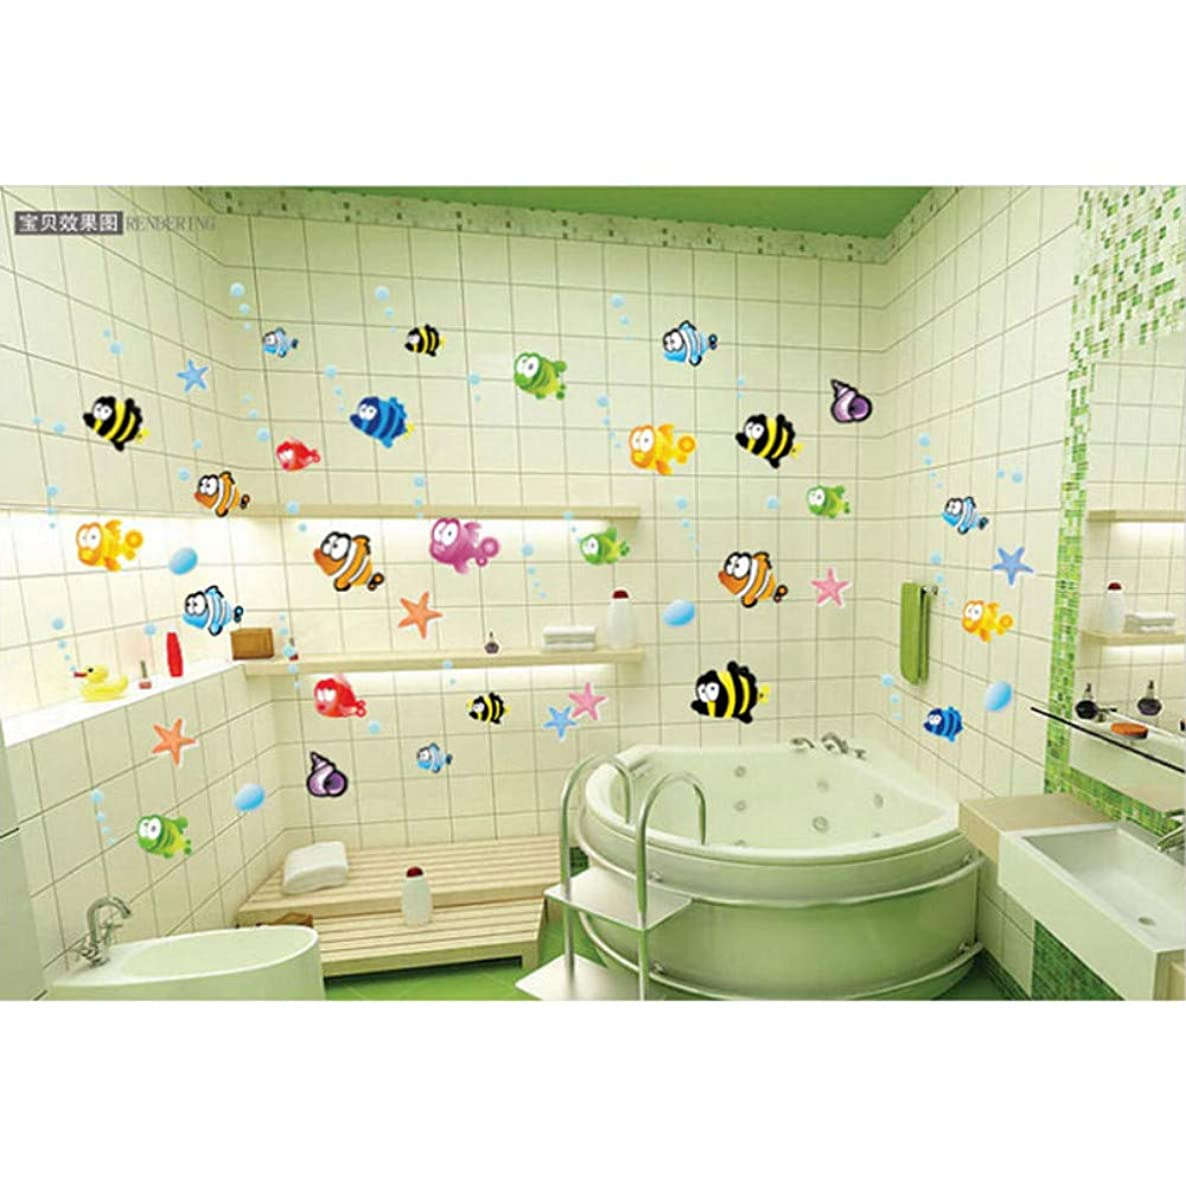 ajhsuwn New 45×60cm Removable Baby Bathroom Stickers Cartoon Vinyl Art Kids Home Decor Mural Fishing Ocean Sea Fish Wall Sticker Decal